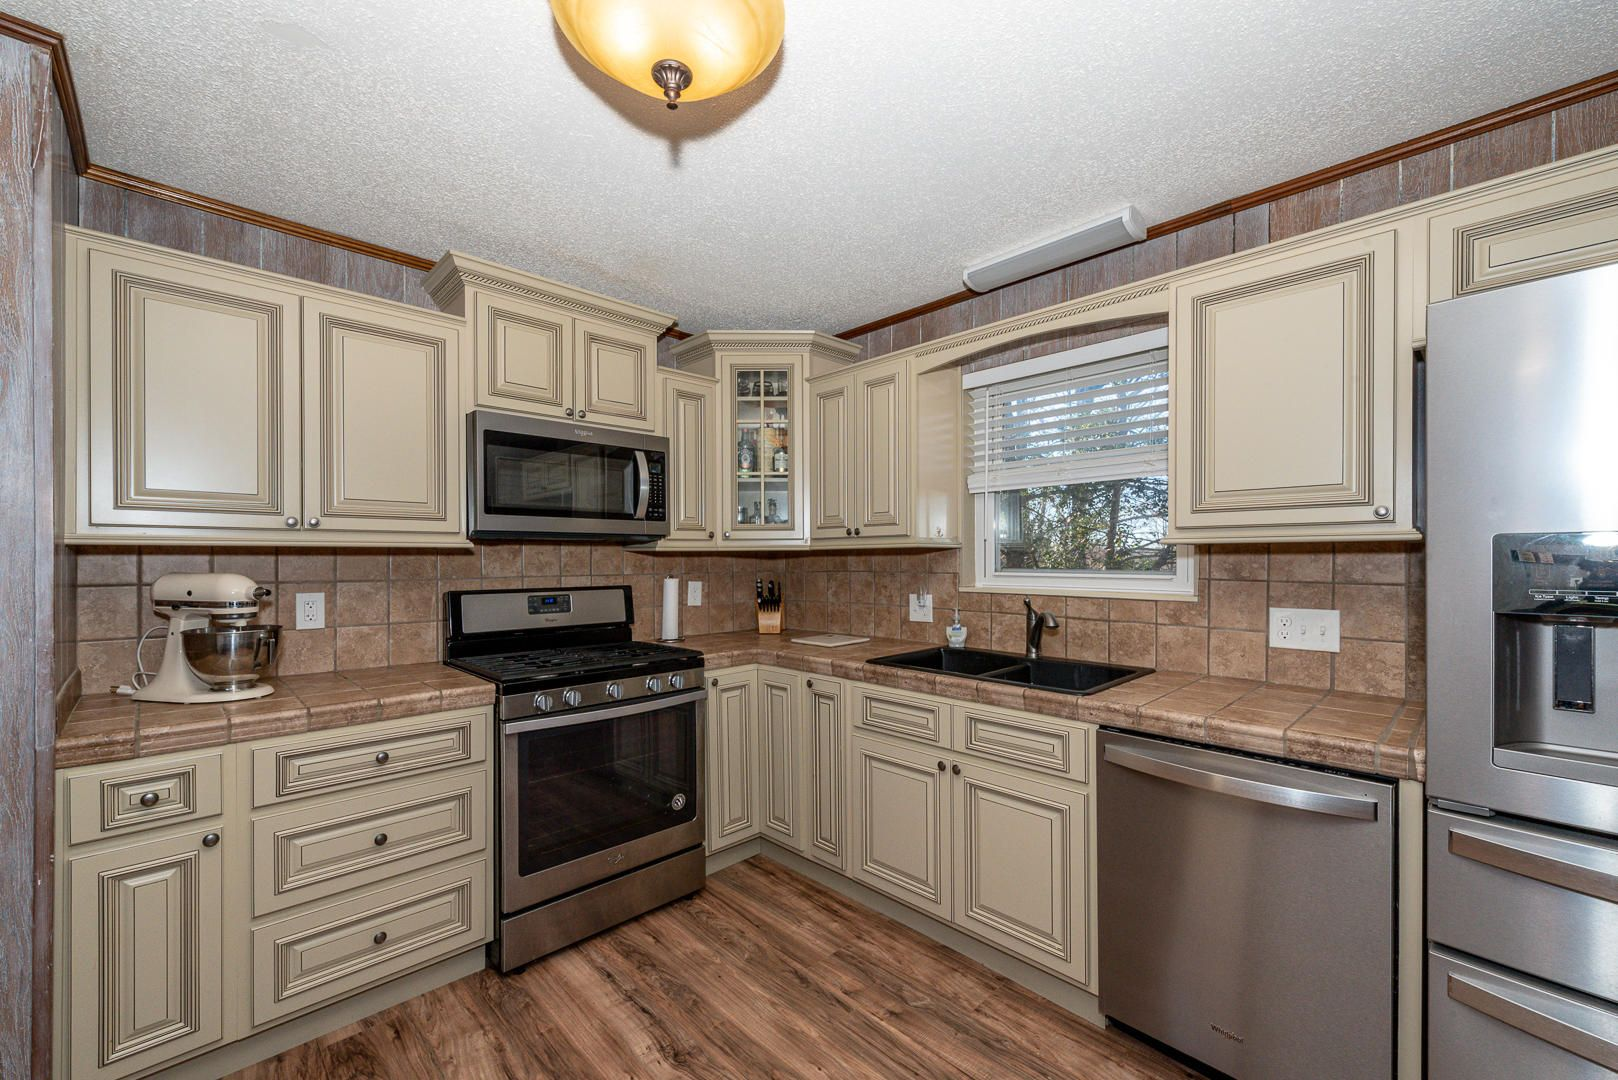 NEW CABINETRY 2019